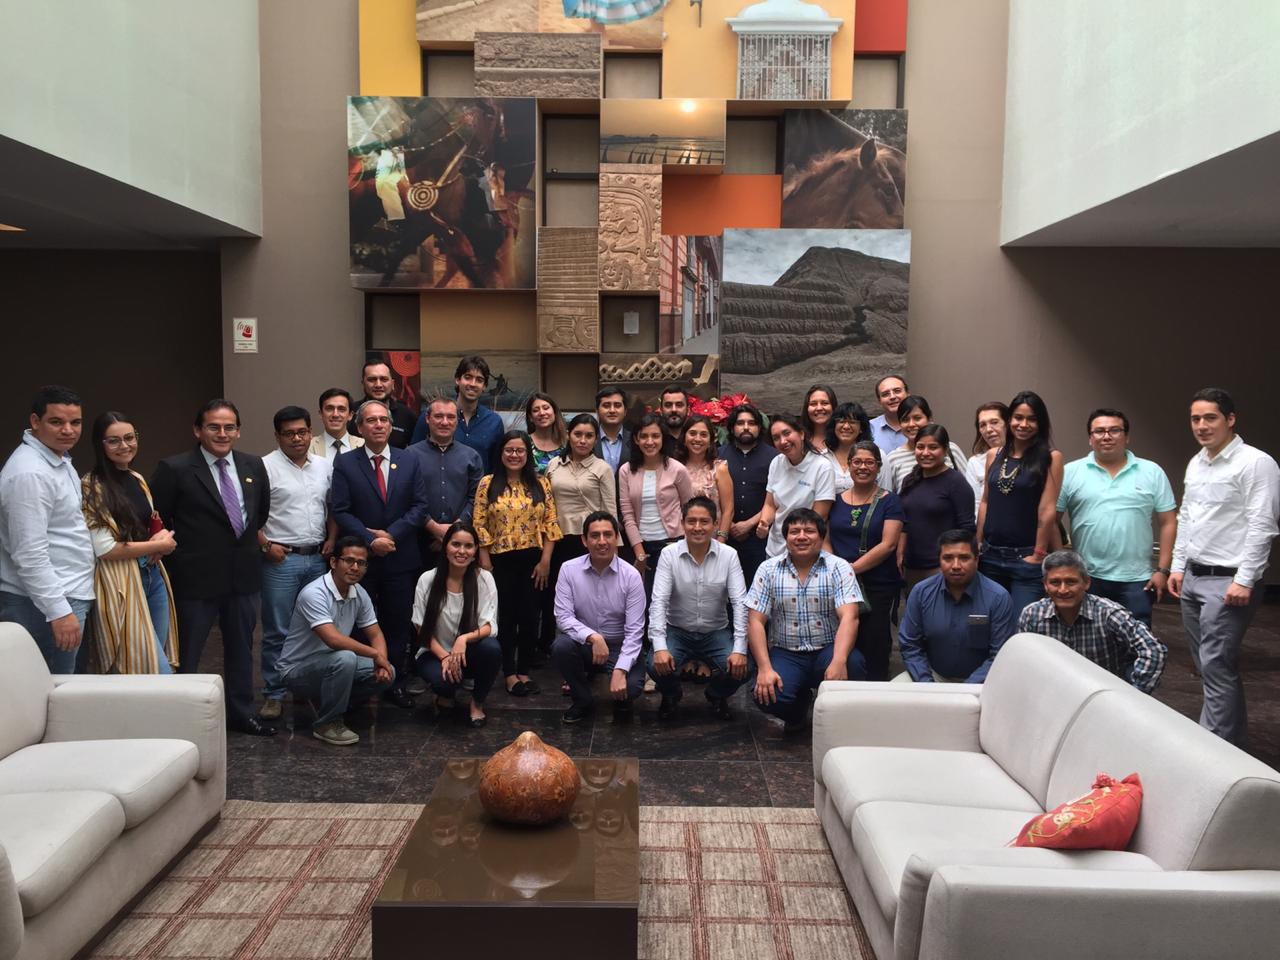 CAF holds patent development workshop for Peru's agro-industrial sector